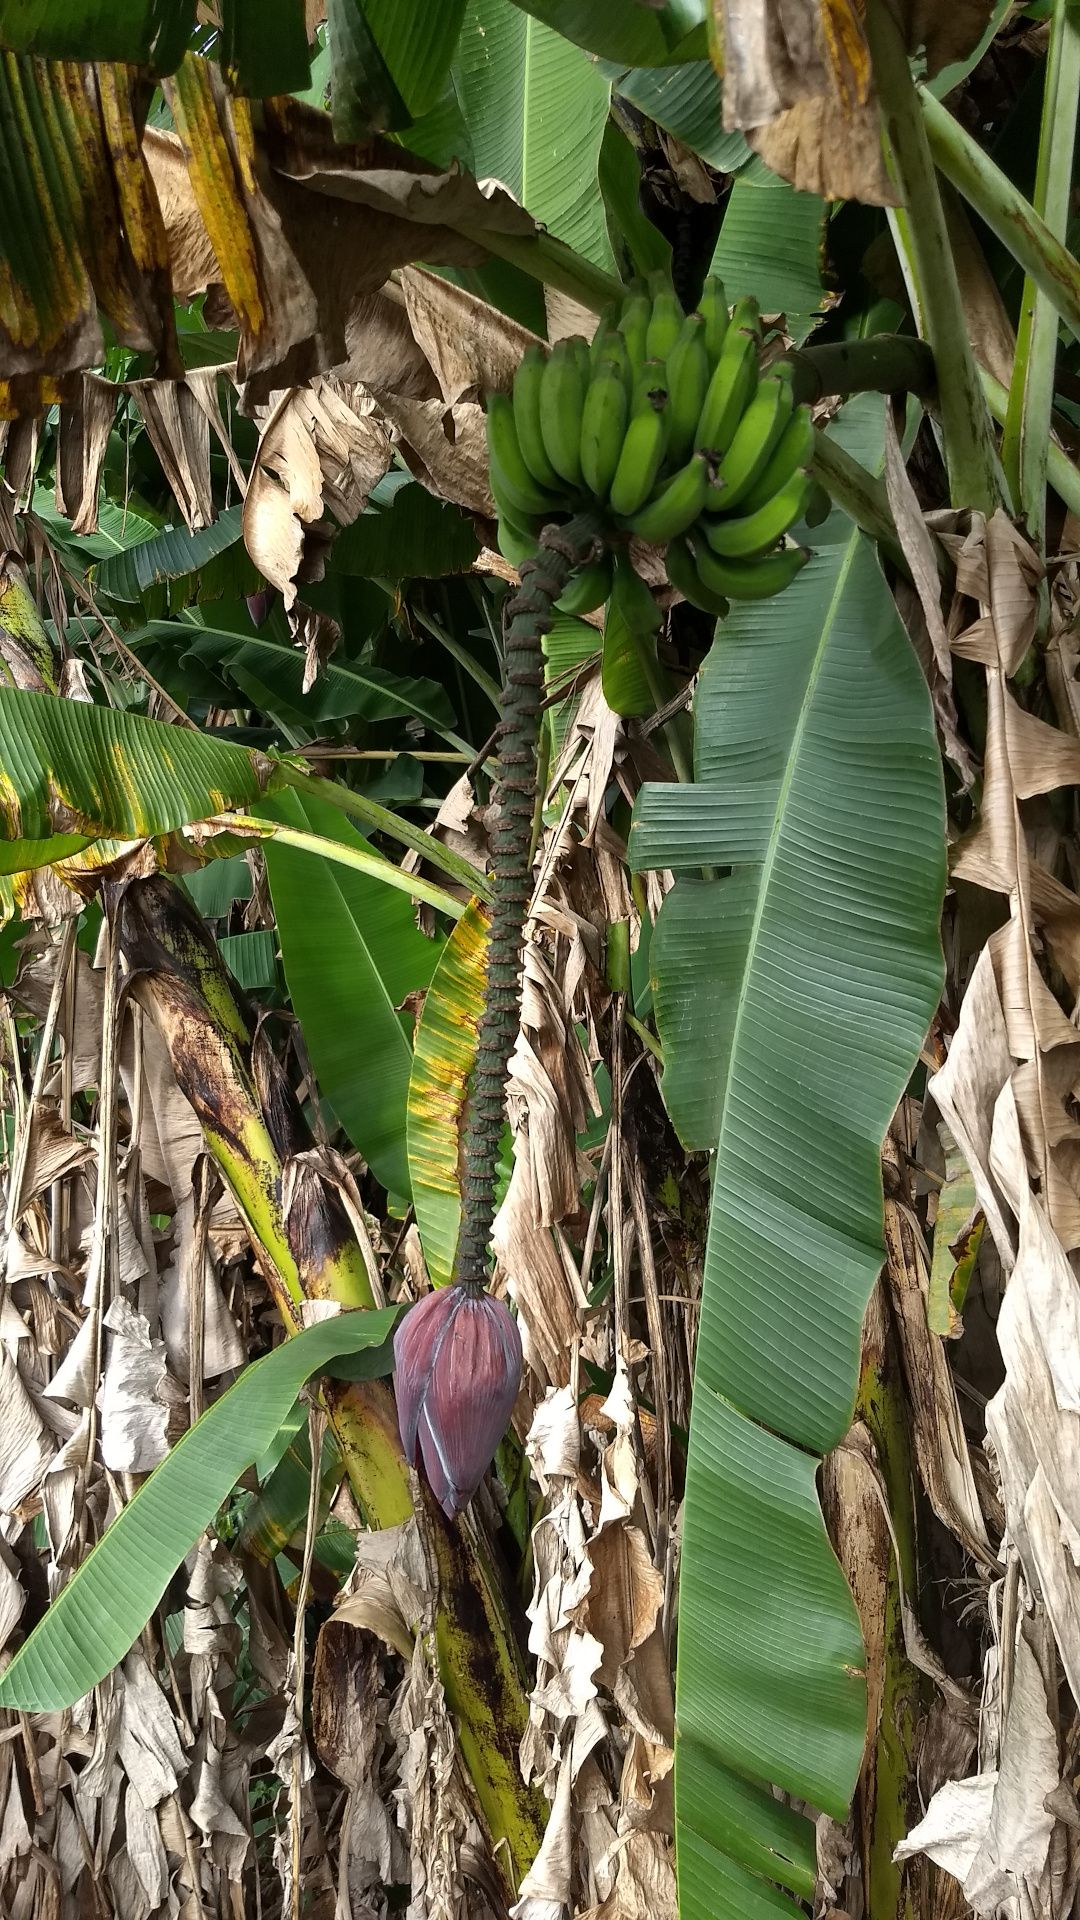 A bunch of bananas on a tree, with a large hanging pod below them. A small gecko is on the stalk of the pod.